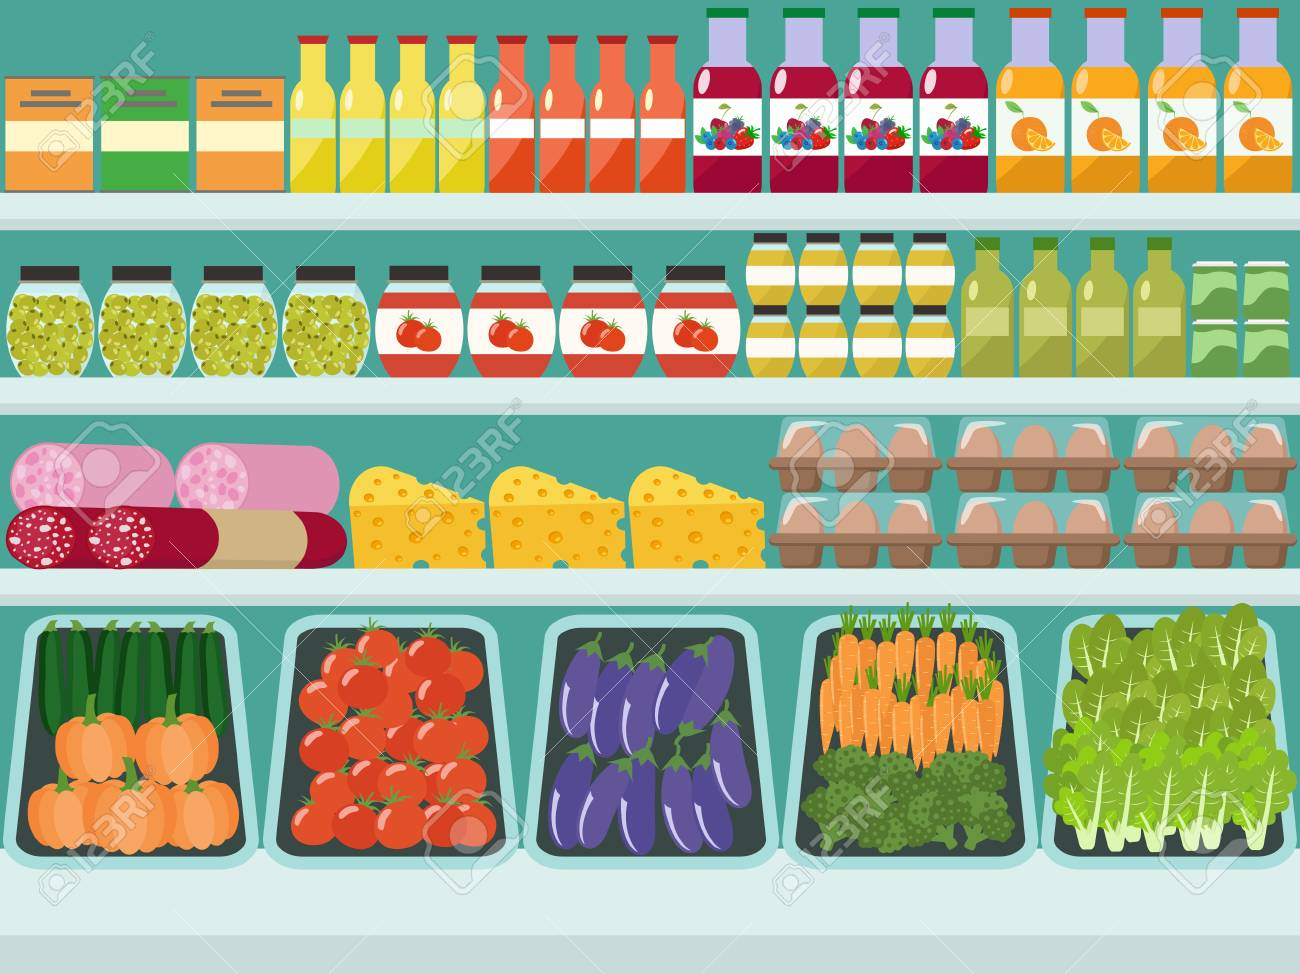 Store shelves with groceries, food and drinks. Vector flat illustration. - 91353482